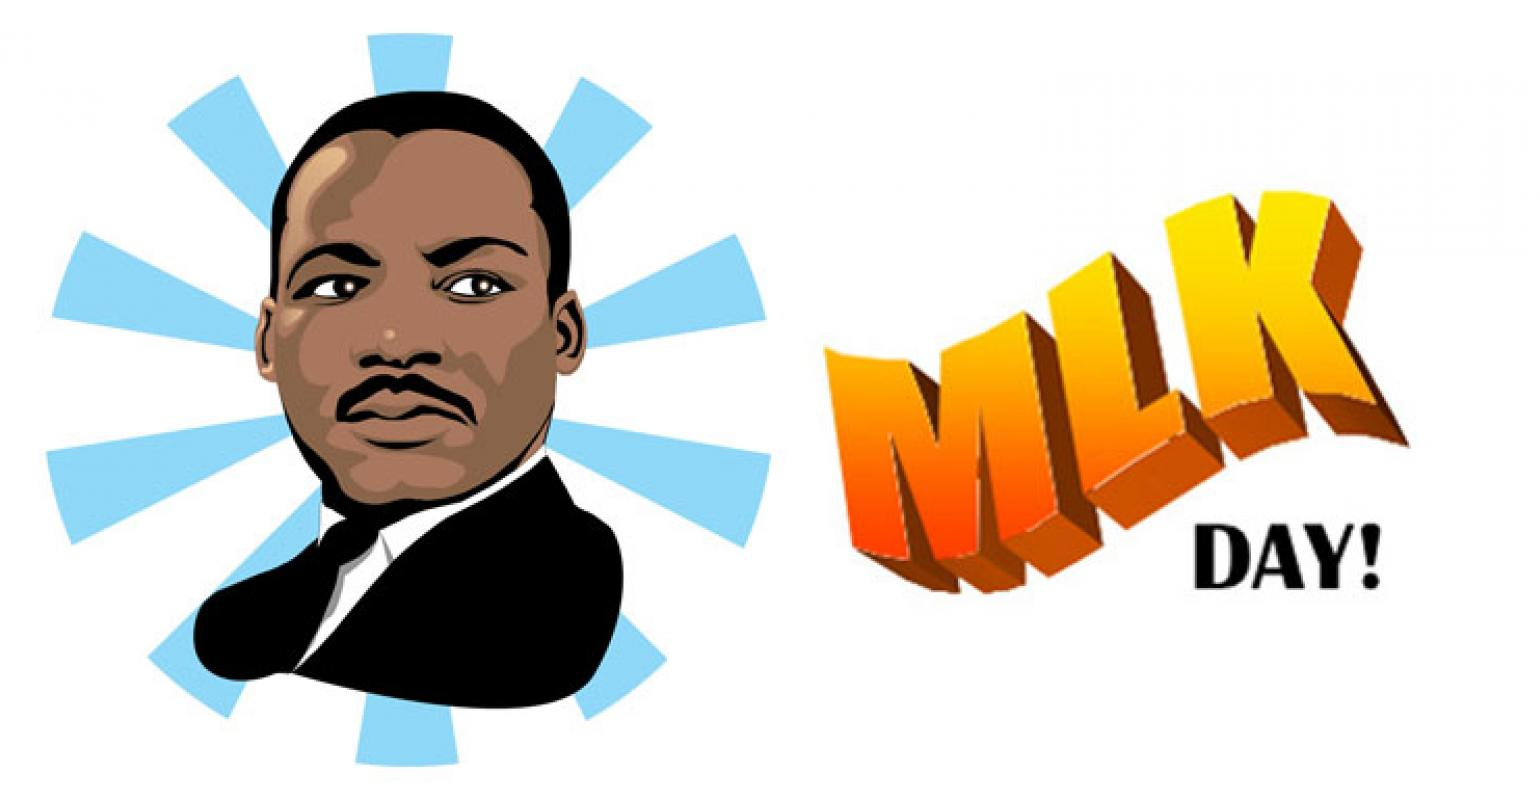 Martin luther king day 2019 clipart clip free library Martin Luther King Jr Clipart Free | Free download best Martin ... clip free library